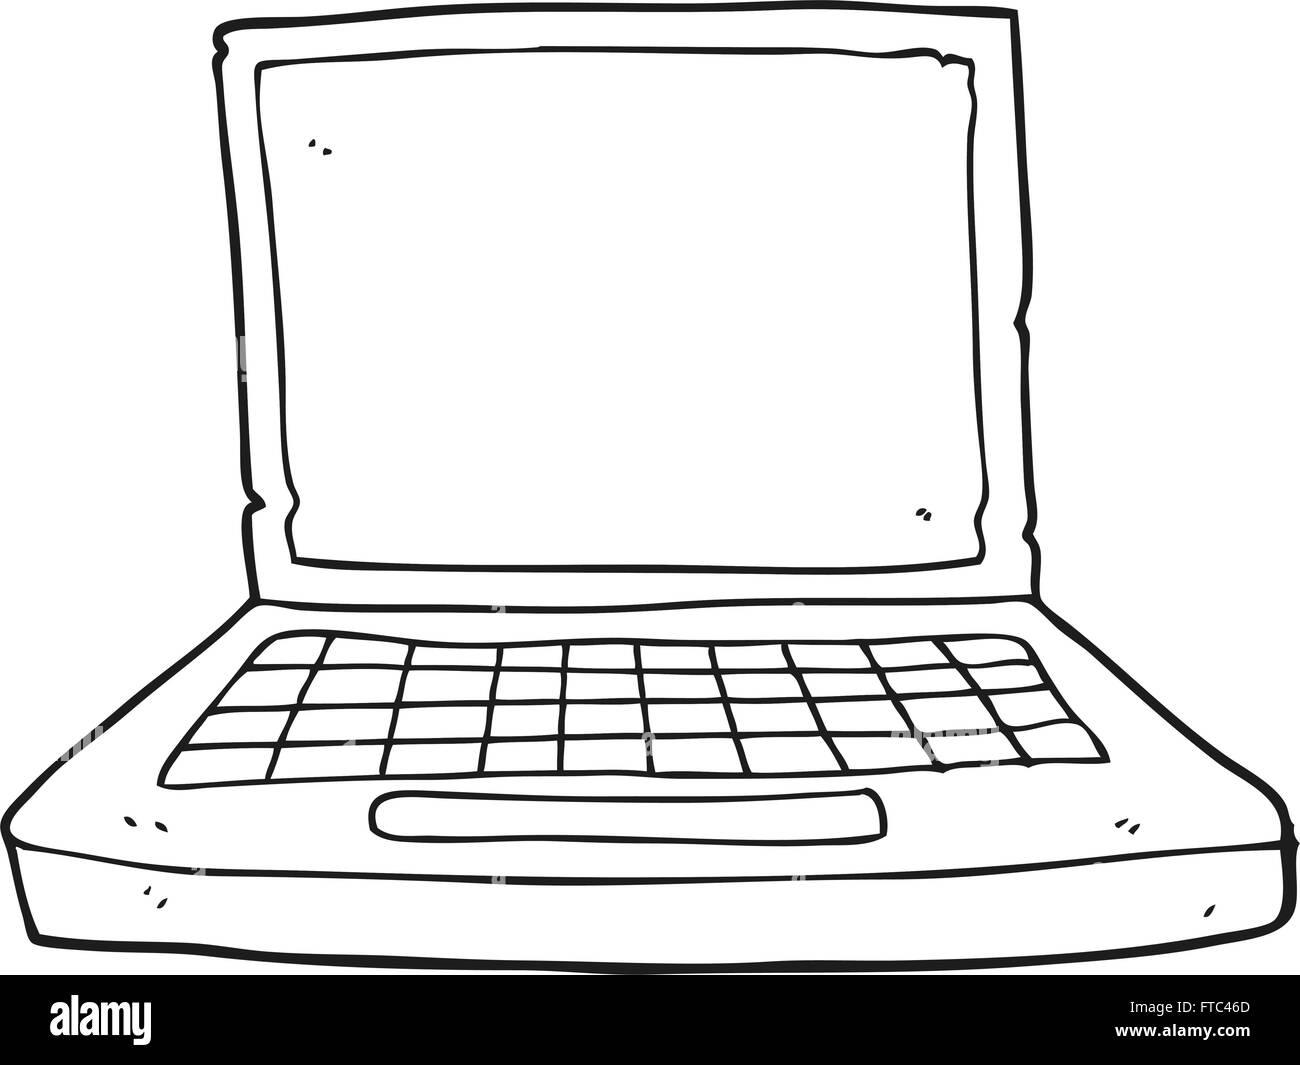 hight resolution of freehand drawn black and white cartoon laptop computer stock image